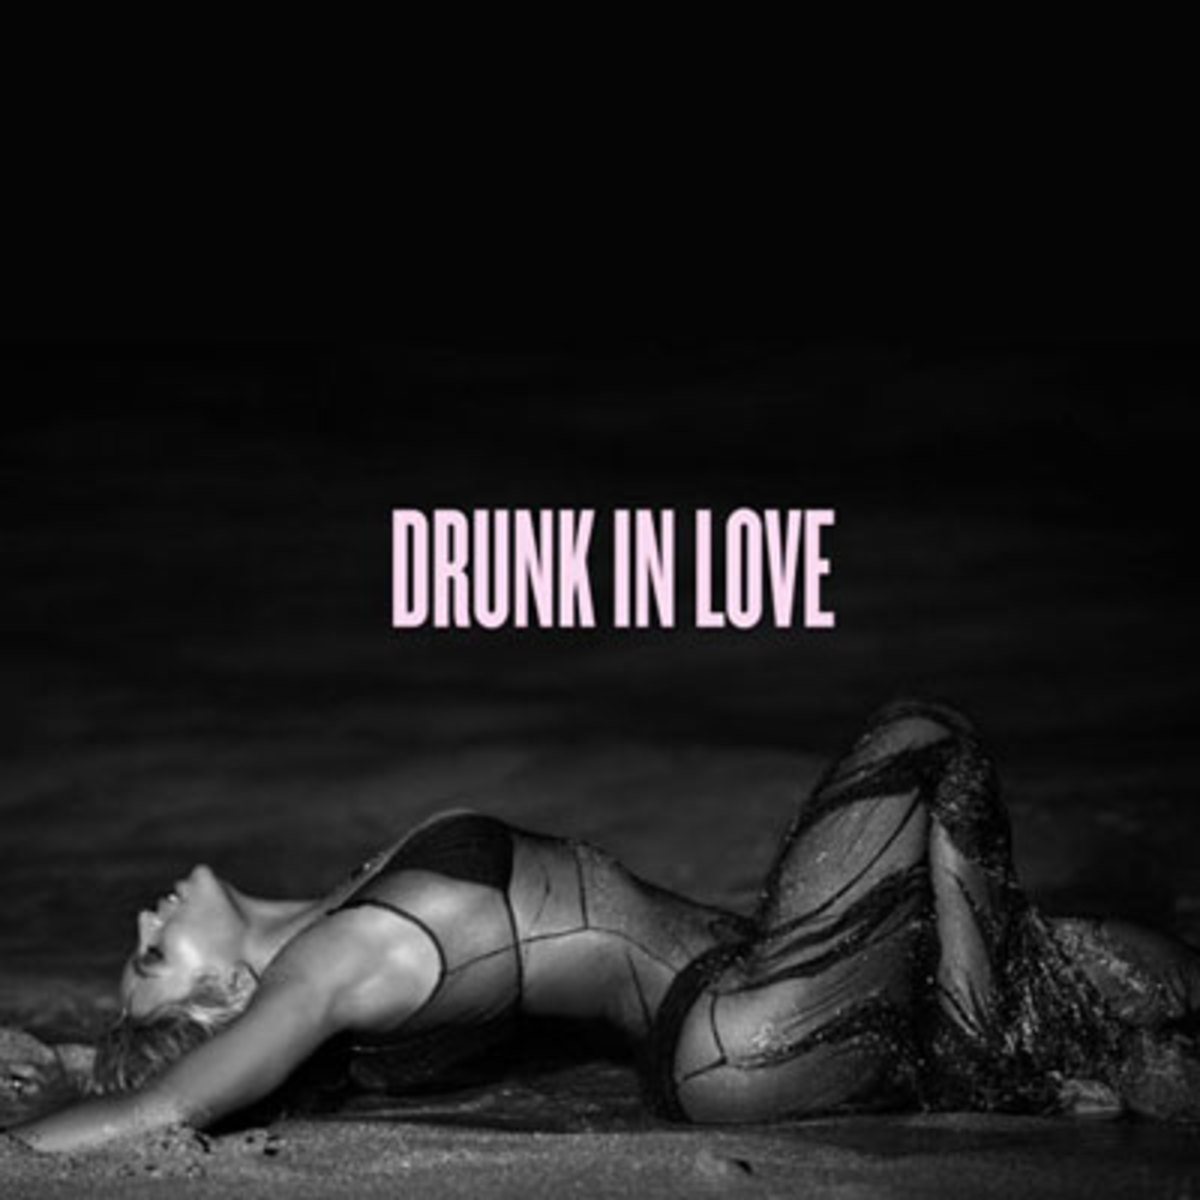 beyonce drunk love mp3 free download